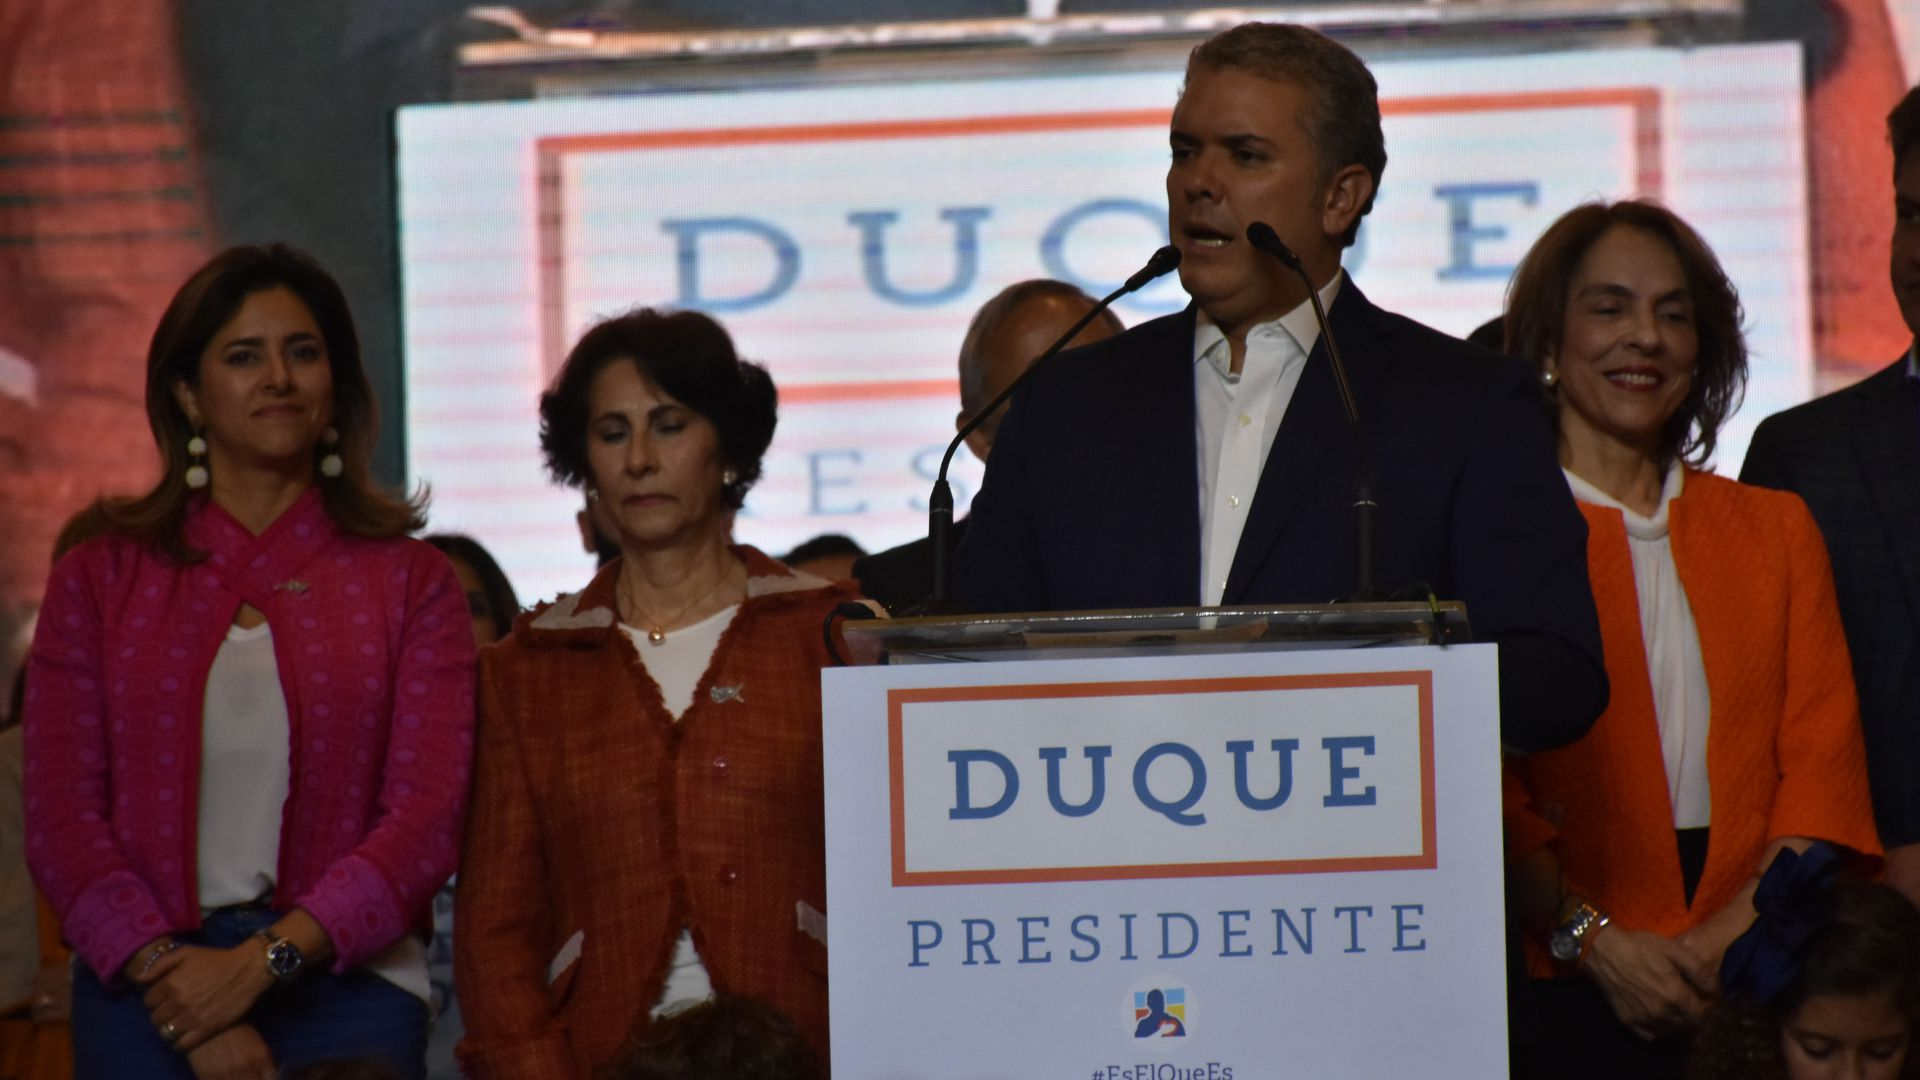 Presidential candidate Ivan Duque delivers a speech after his victory of the Presidential elections in Bogota, Colombia, on June 17, 2018.